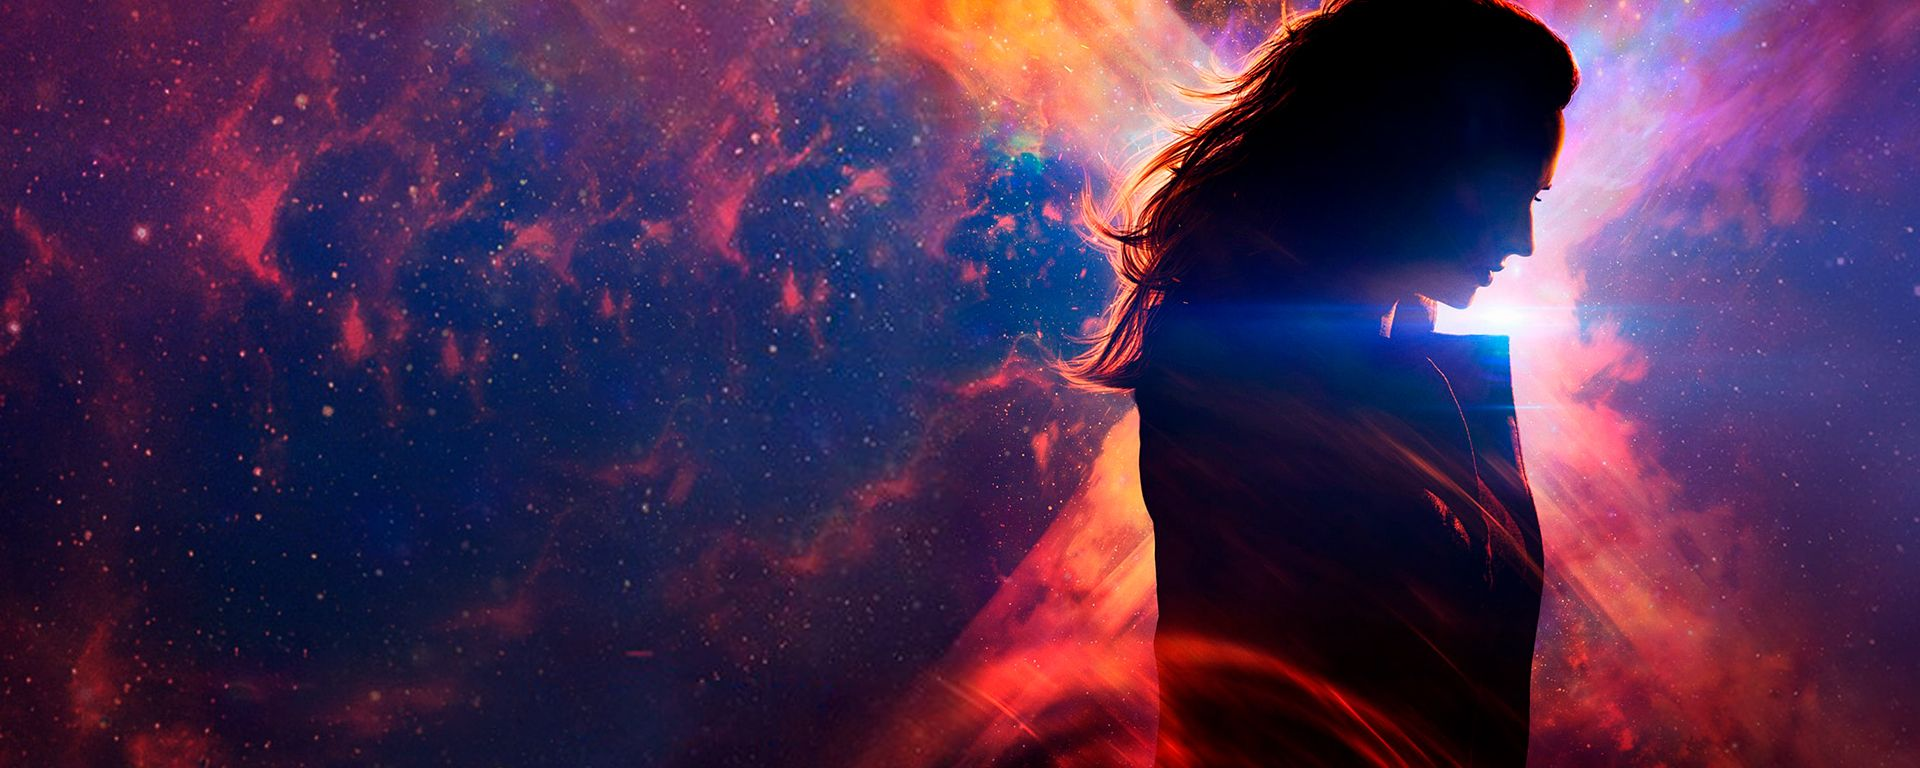 Free Download Dark Phoenix HD Wallpaper (With images